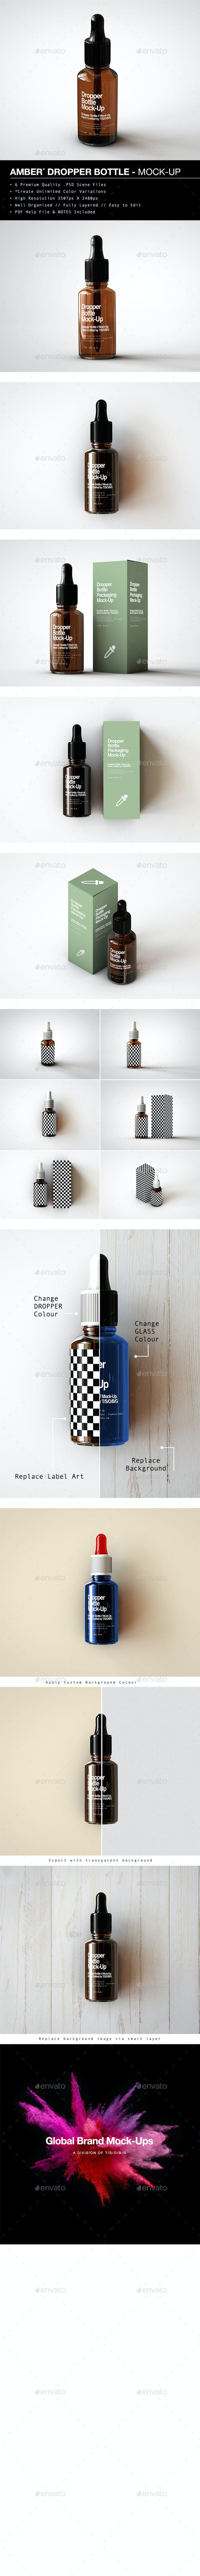 Amber Dropper Bottle With Box Mock-Up